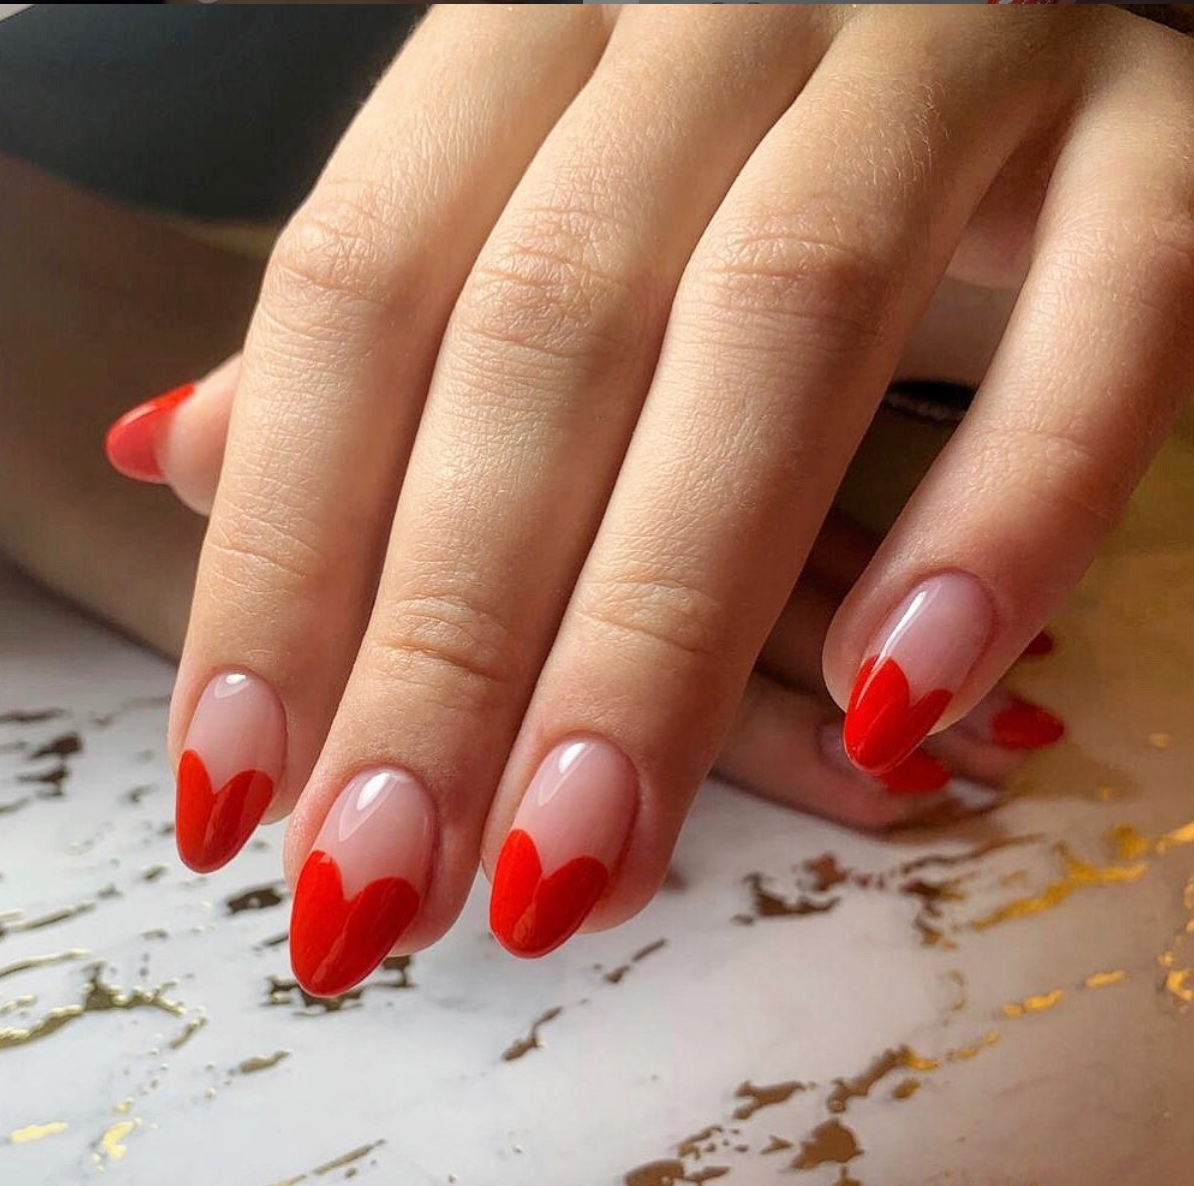 Red oval acrylics